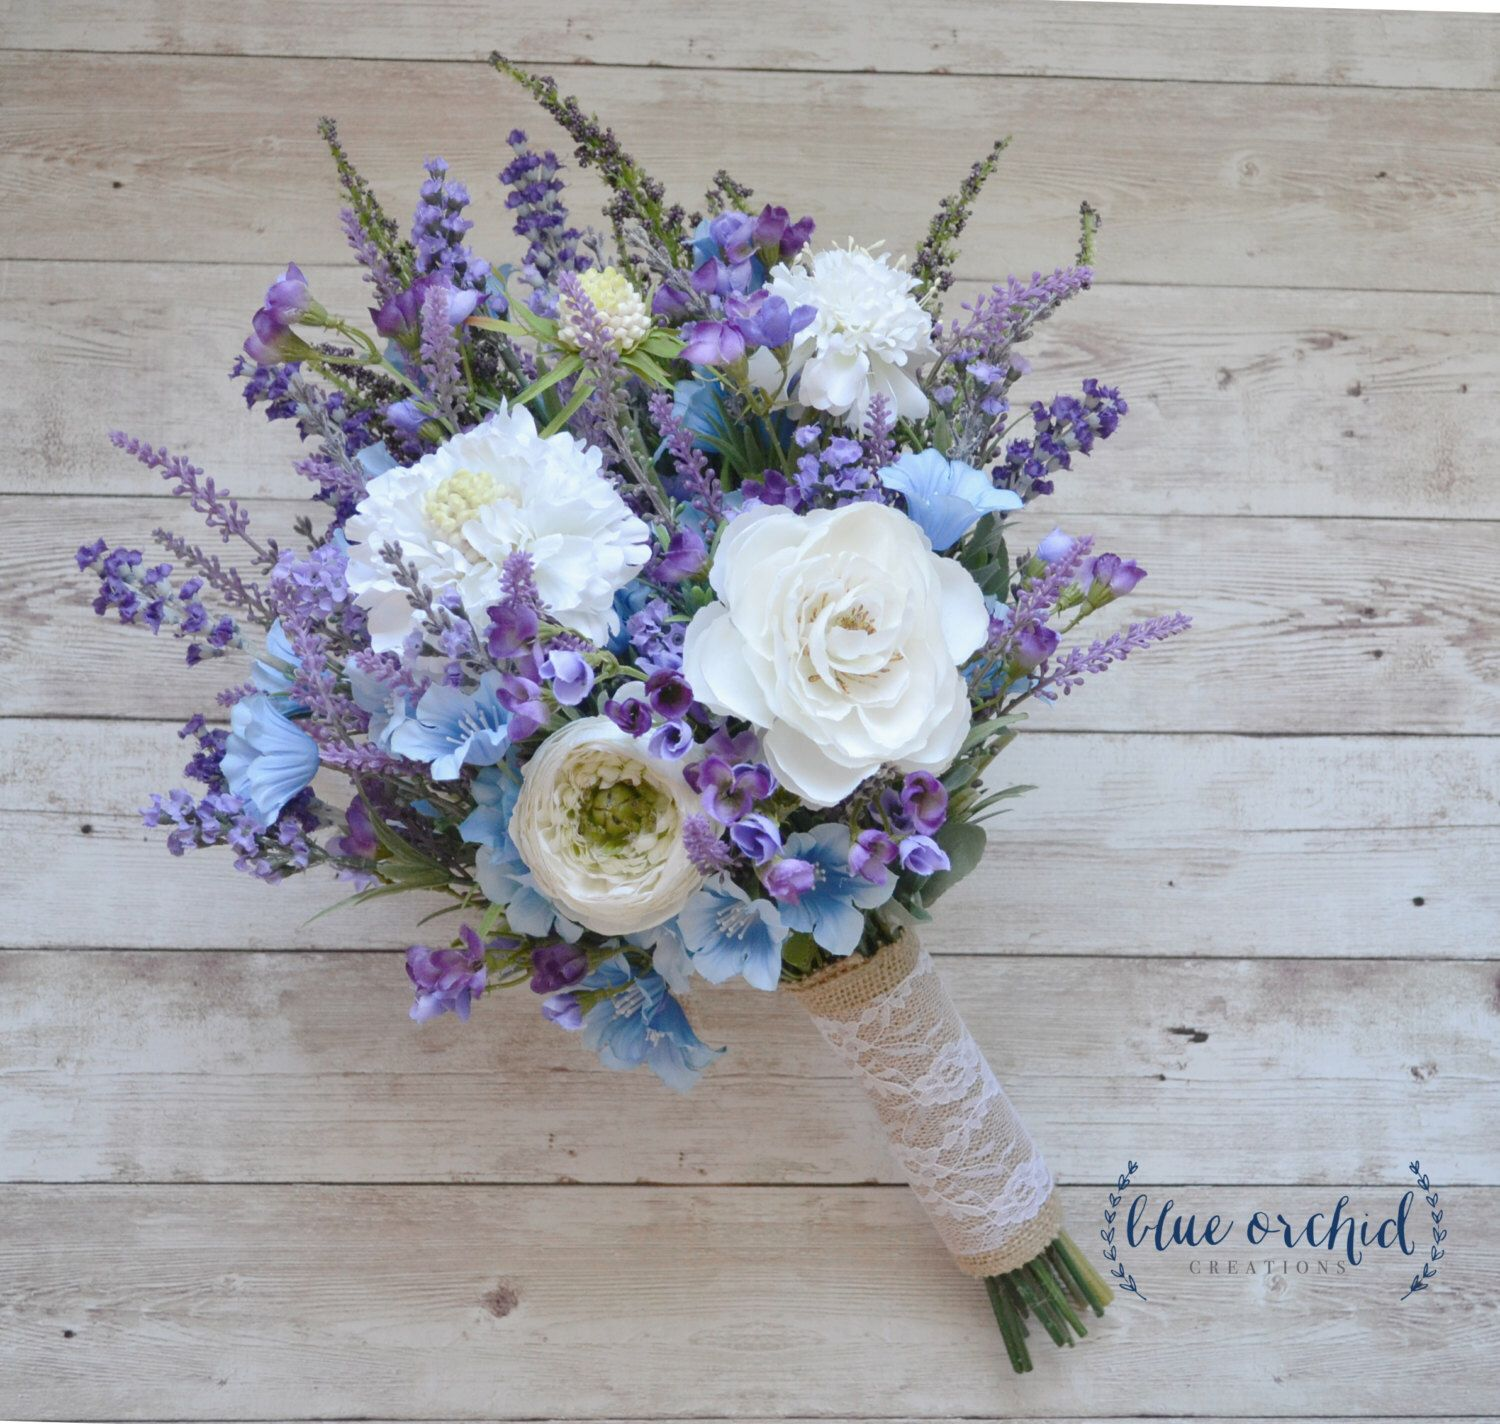 Rustic Wedding Bouquet Blue And Lavender Wildflower Bouquet With Cream Ranunculus And Thistle B Blaue Hochzeitsstrausse Hochzeitsgestecke Blumenstrauss Hochzeit